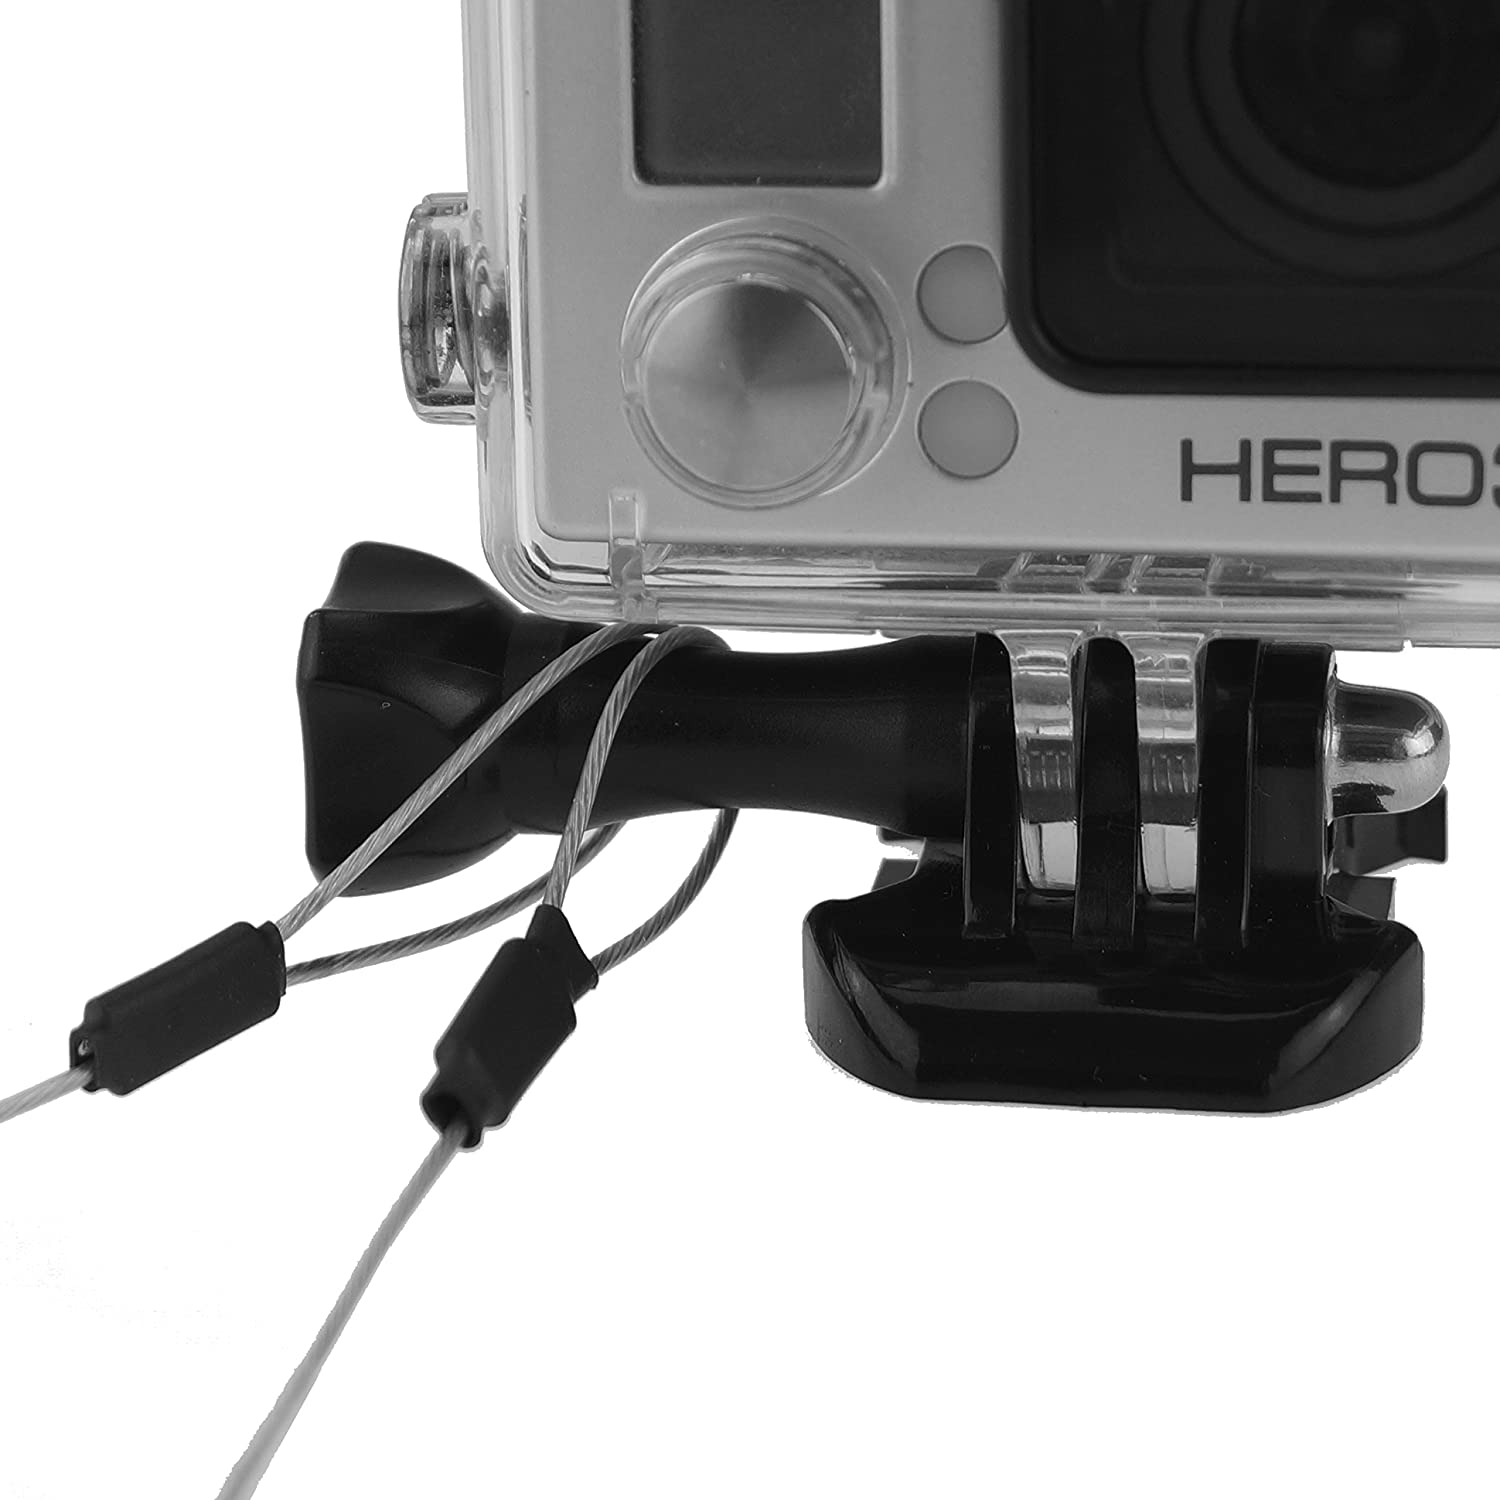 CamKix 30 Inch Stainless Steel Tether Lanyard for Gopro Hero 5//4 Black Silver Session Hero+ LCD 2 Customizable 3 Lanyards // 12 Metal Tubes // 3 Shrinkable Tubes//Instruction Card 3+ 3 1